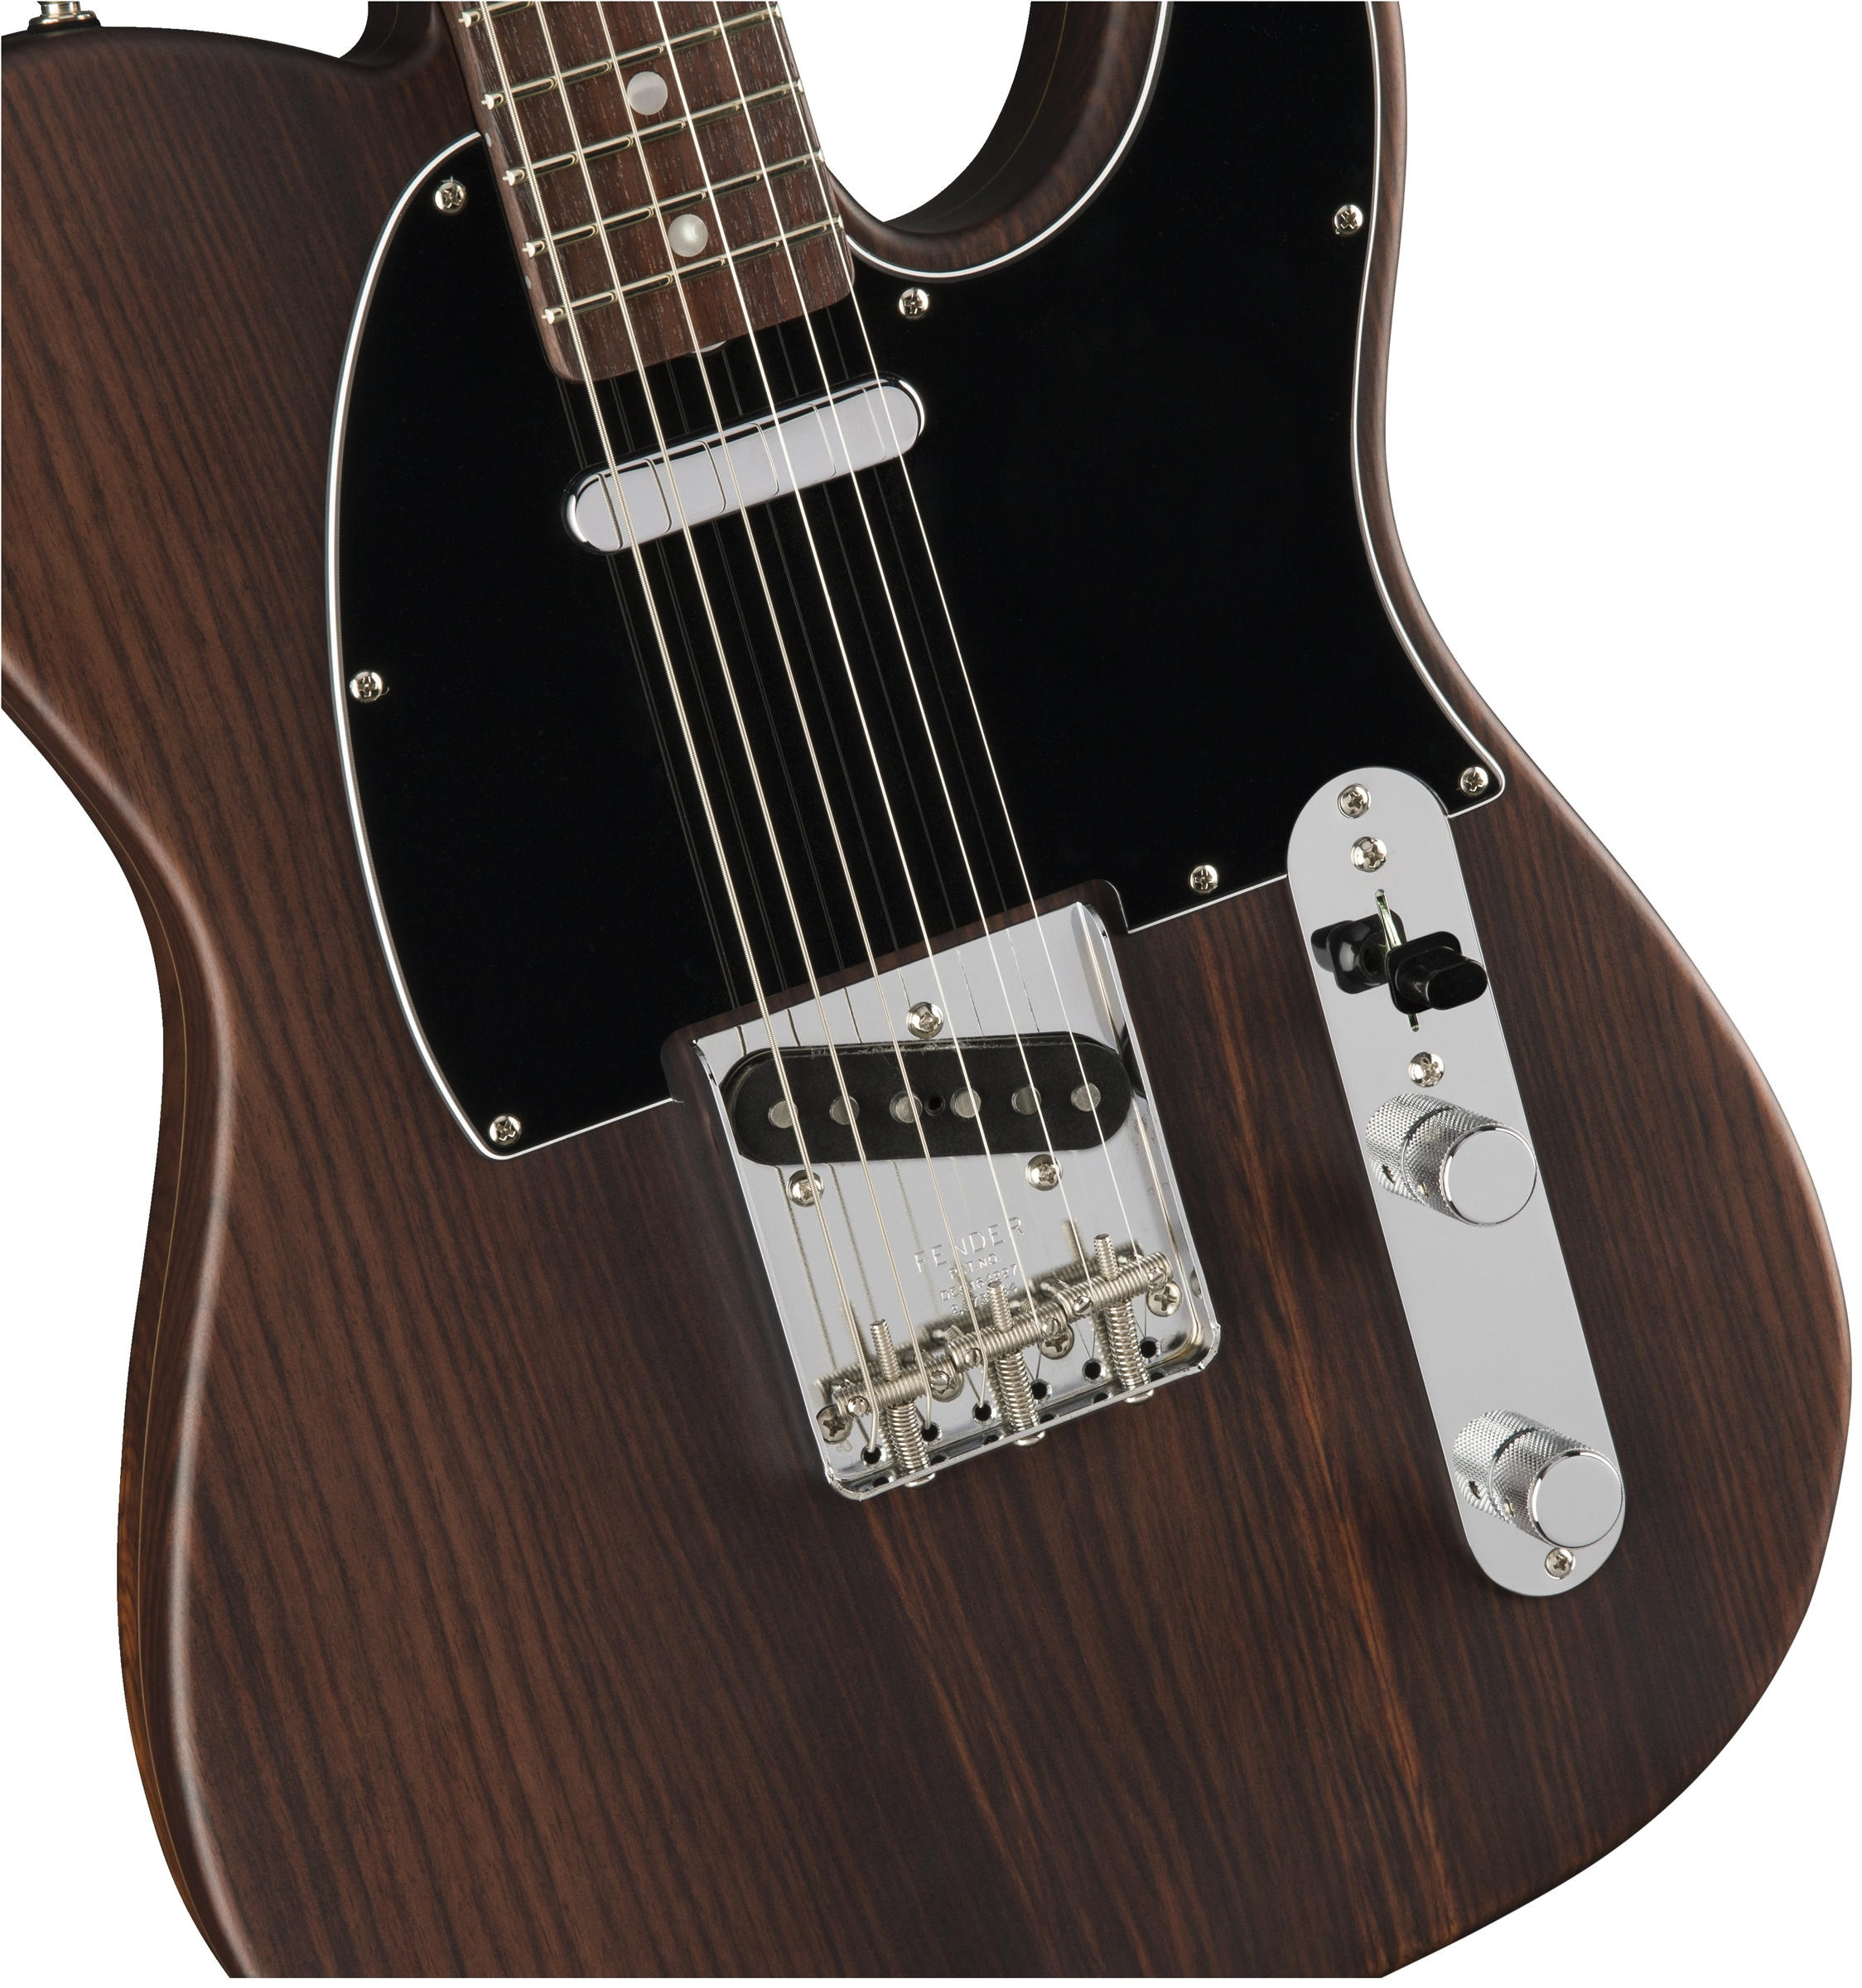 George Harrison Telecaster Electric Guitars Way Fender Switch Wiring Help Guitar Forum Tap To Expand